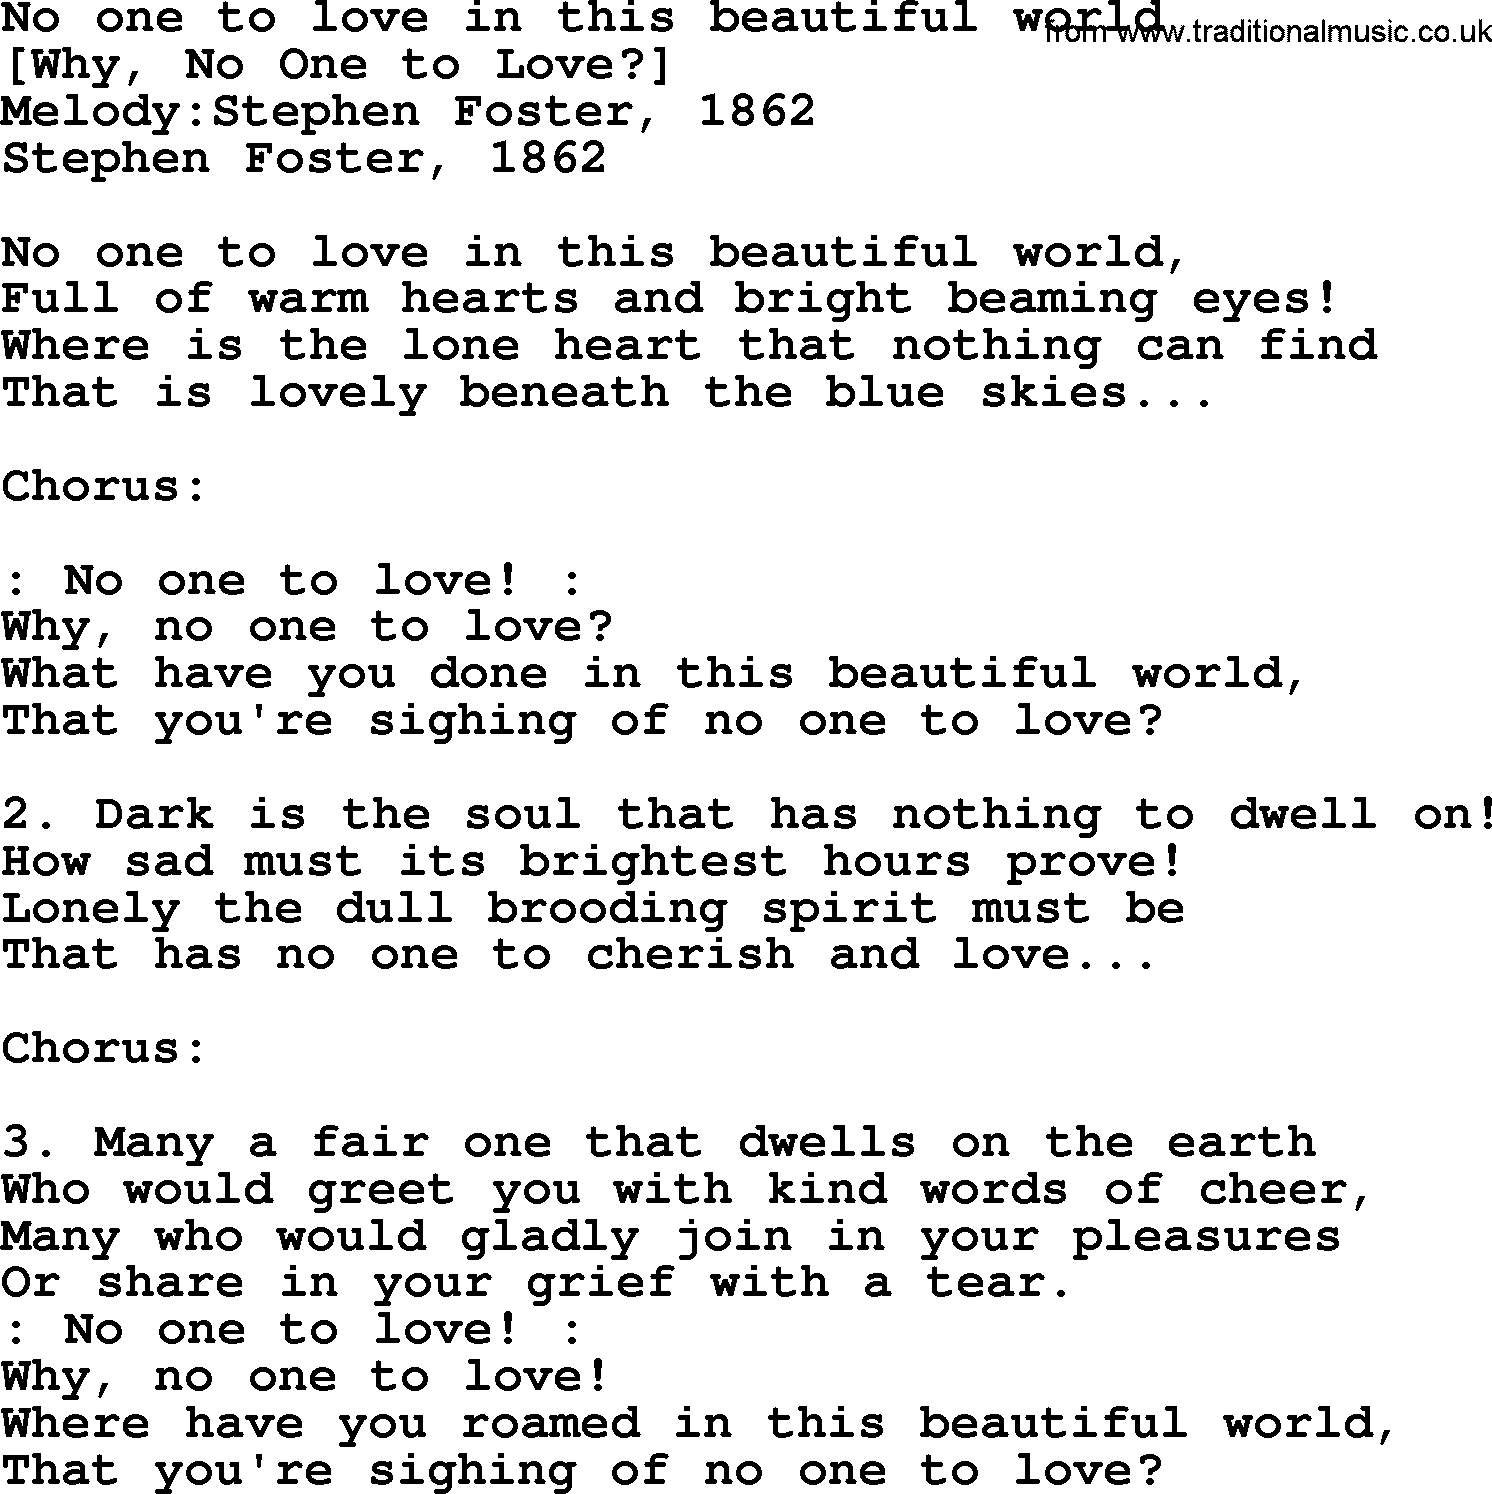 Old American Song Lyrics For No One To Love In This Beautiful World With Pdf